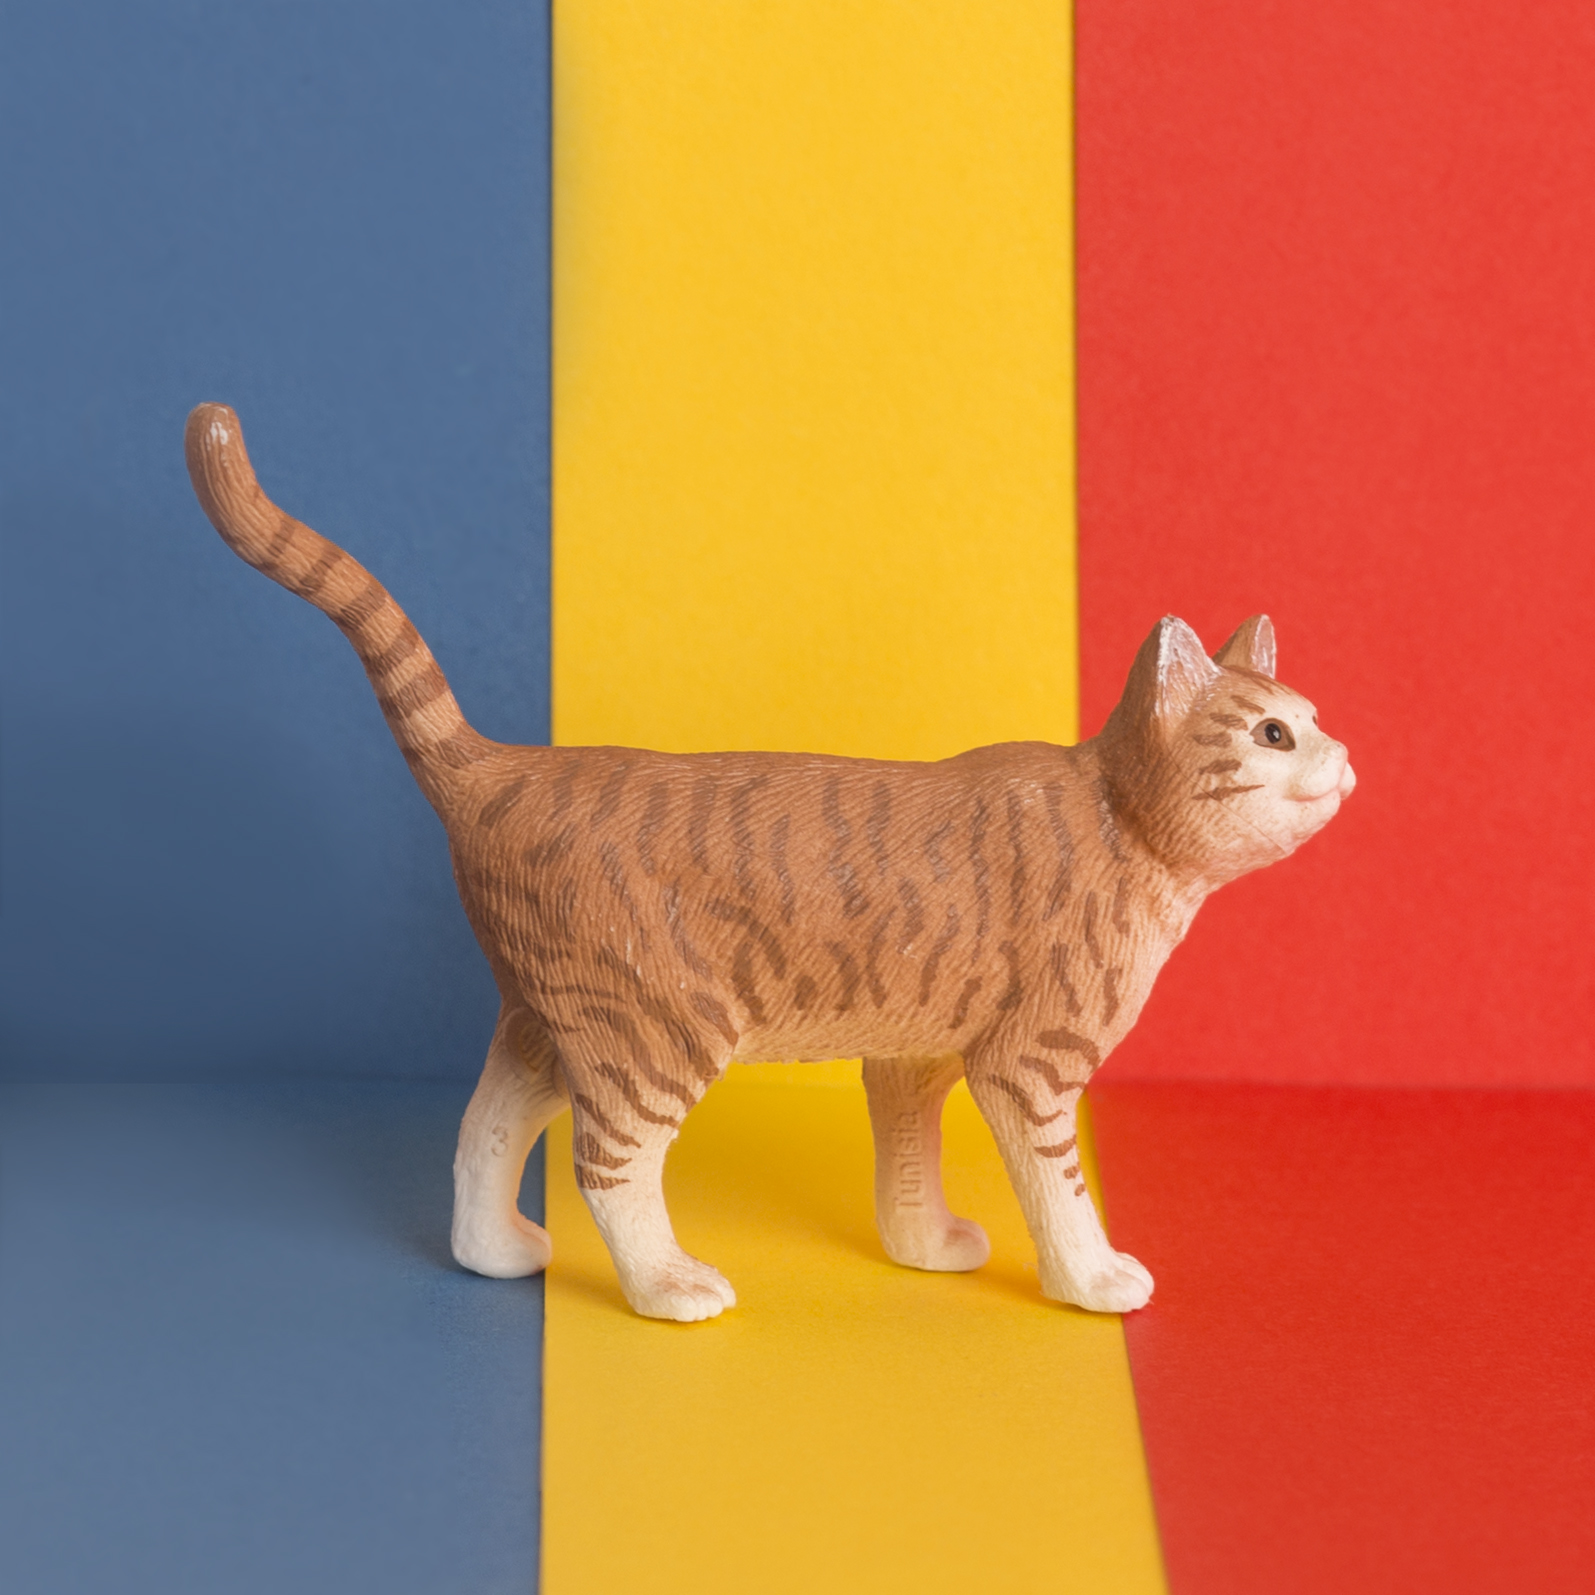 August 8th - International Cat Day